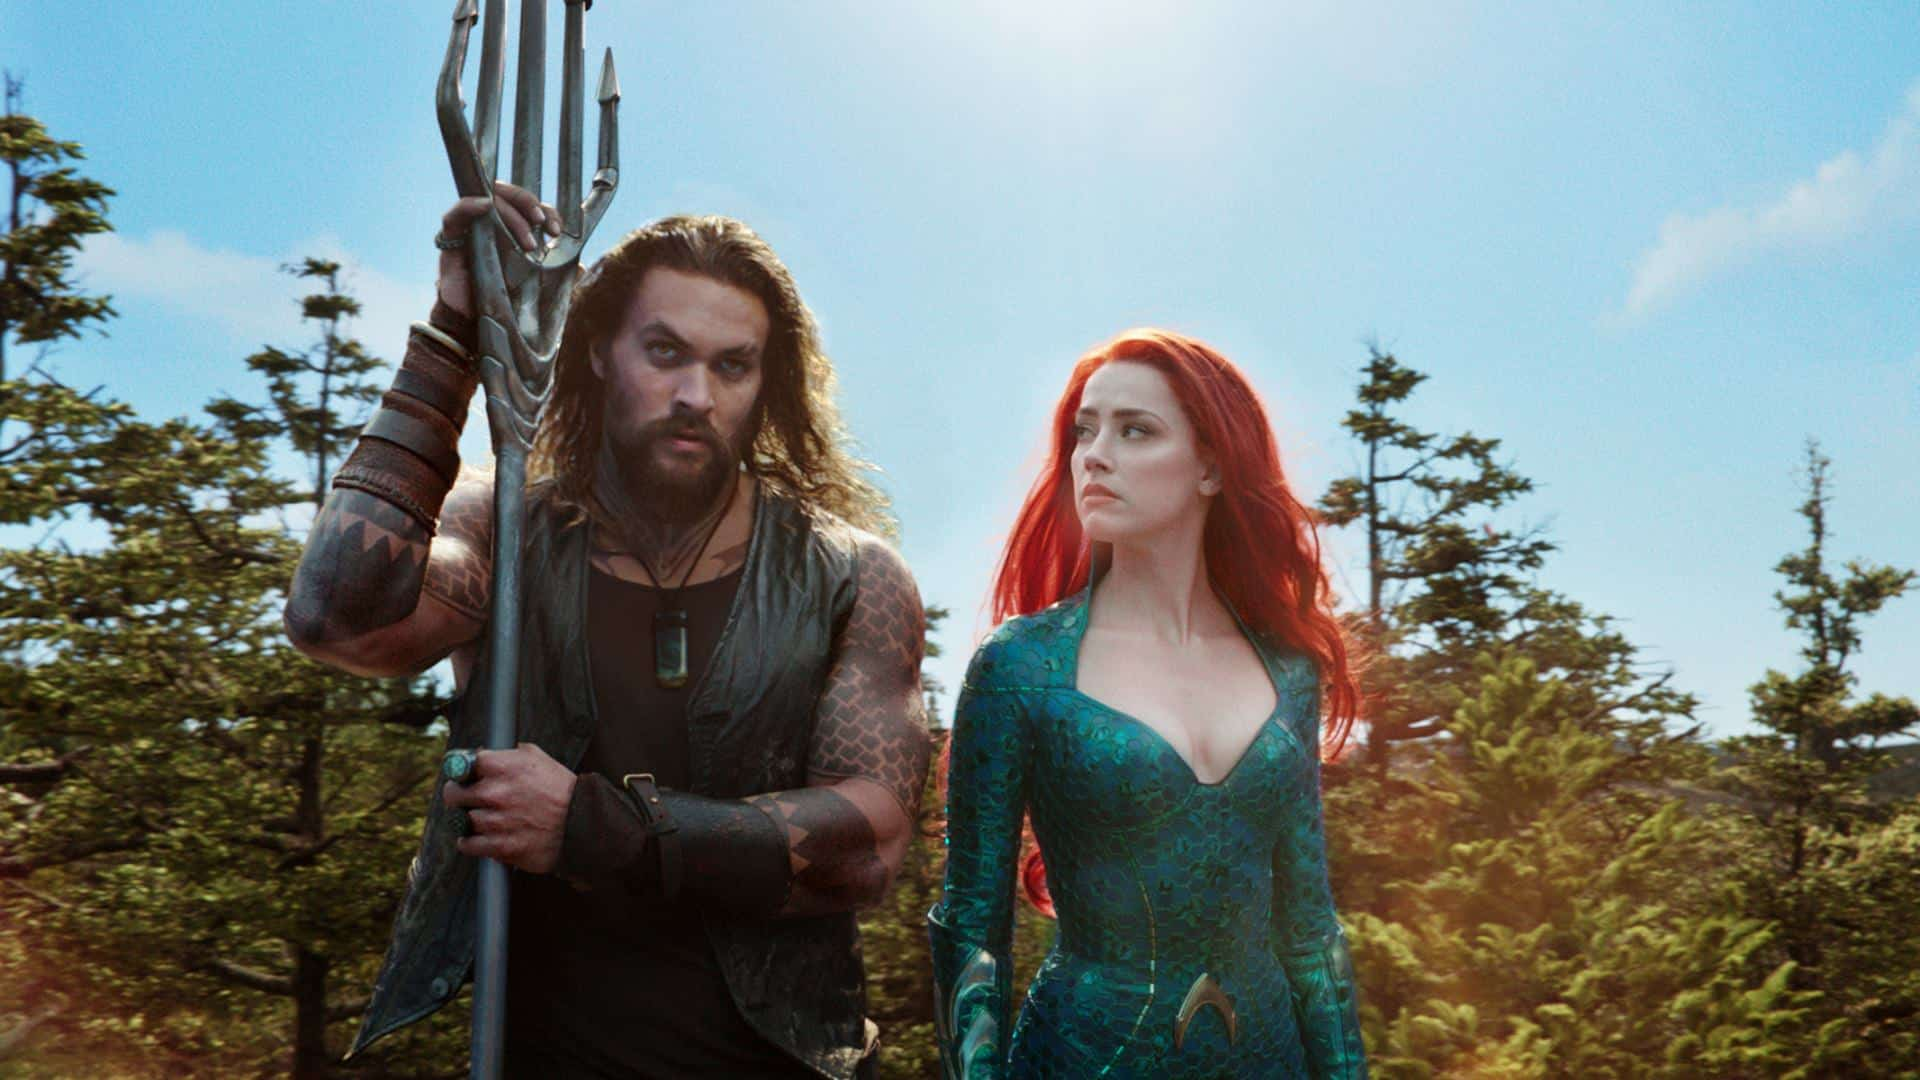 Jason Momoa and Amber Heard in Aquaman